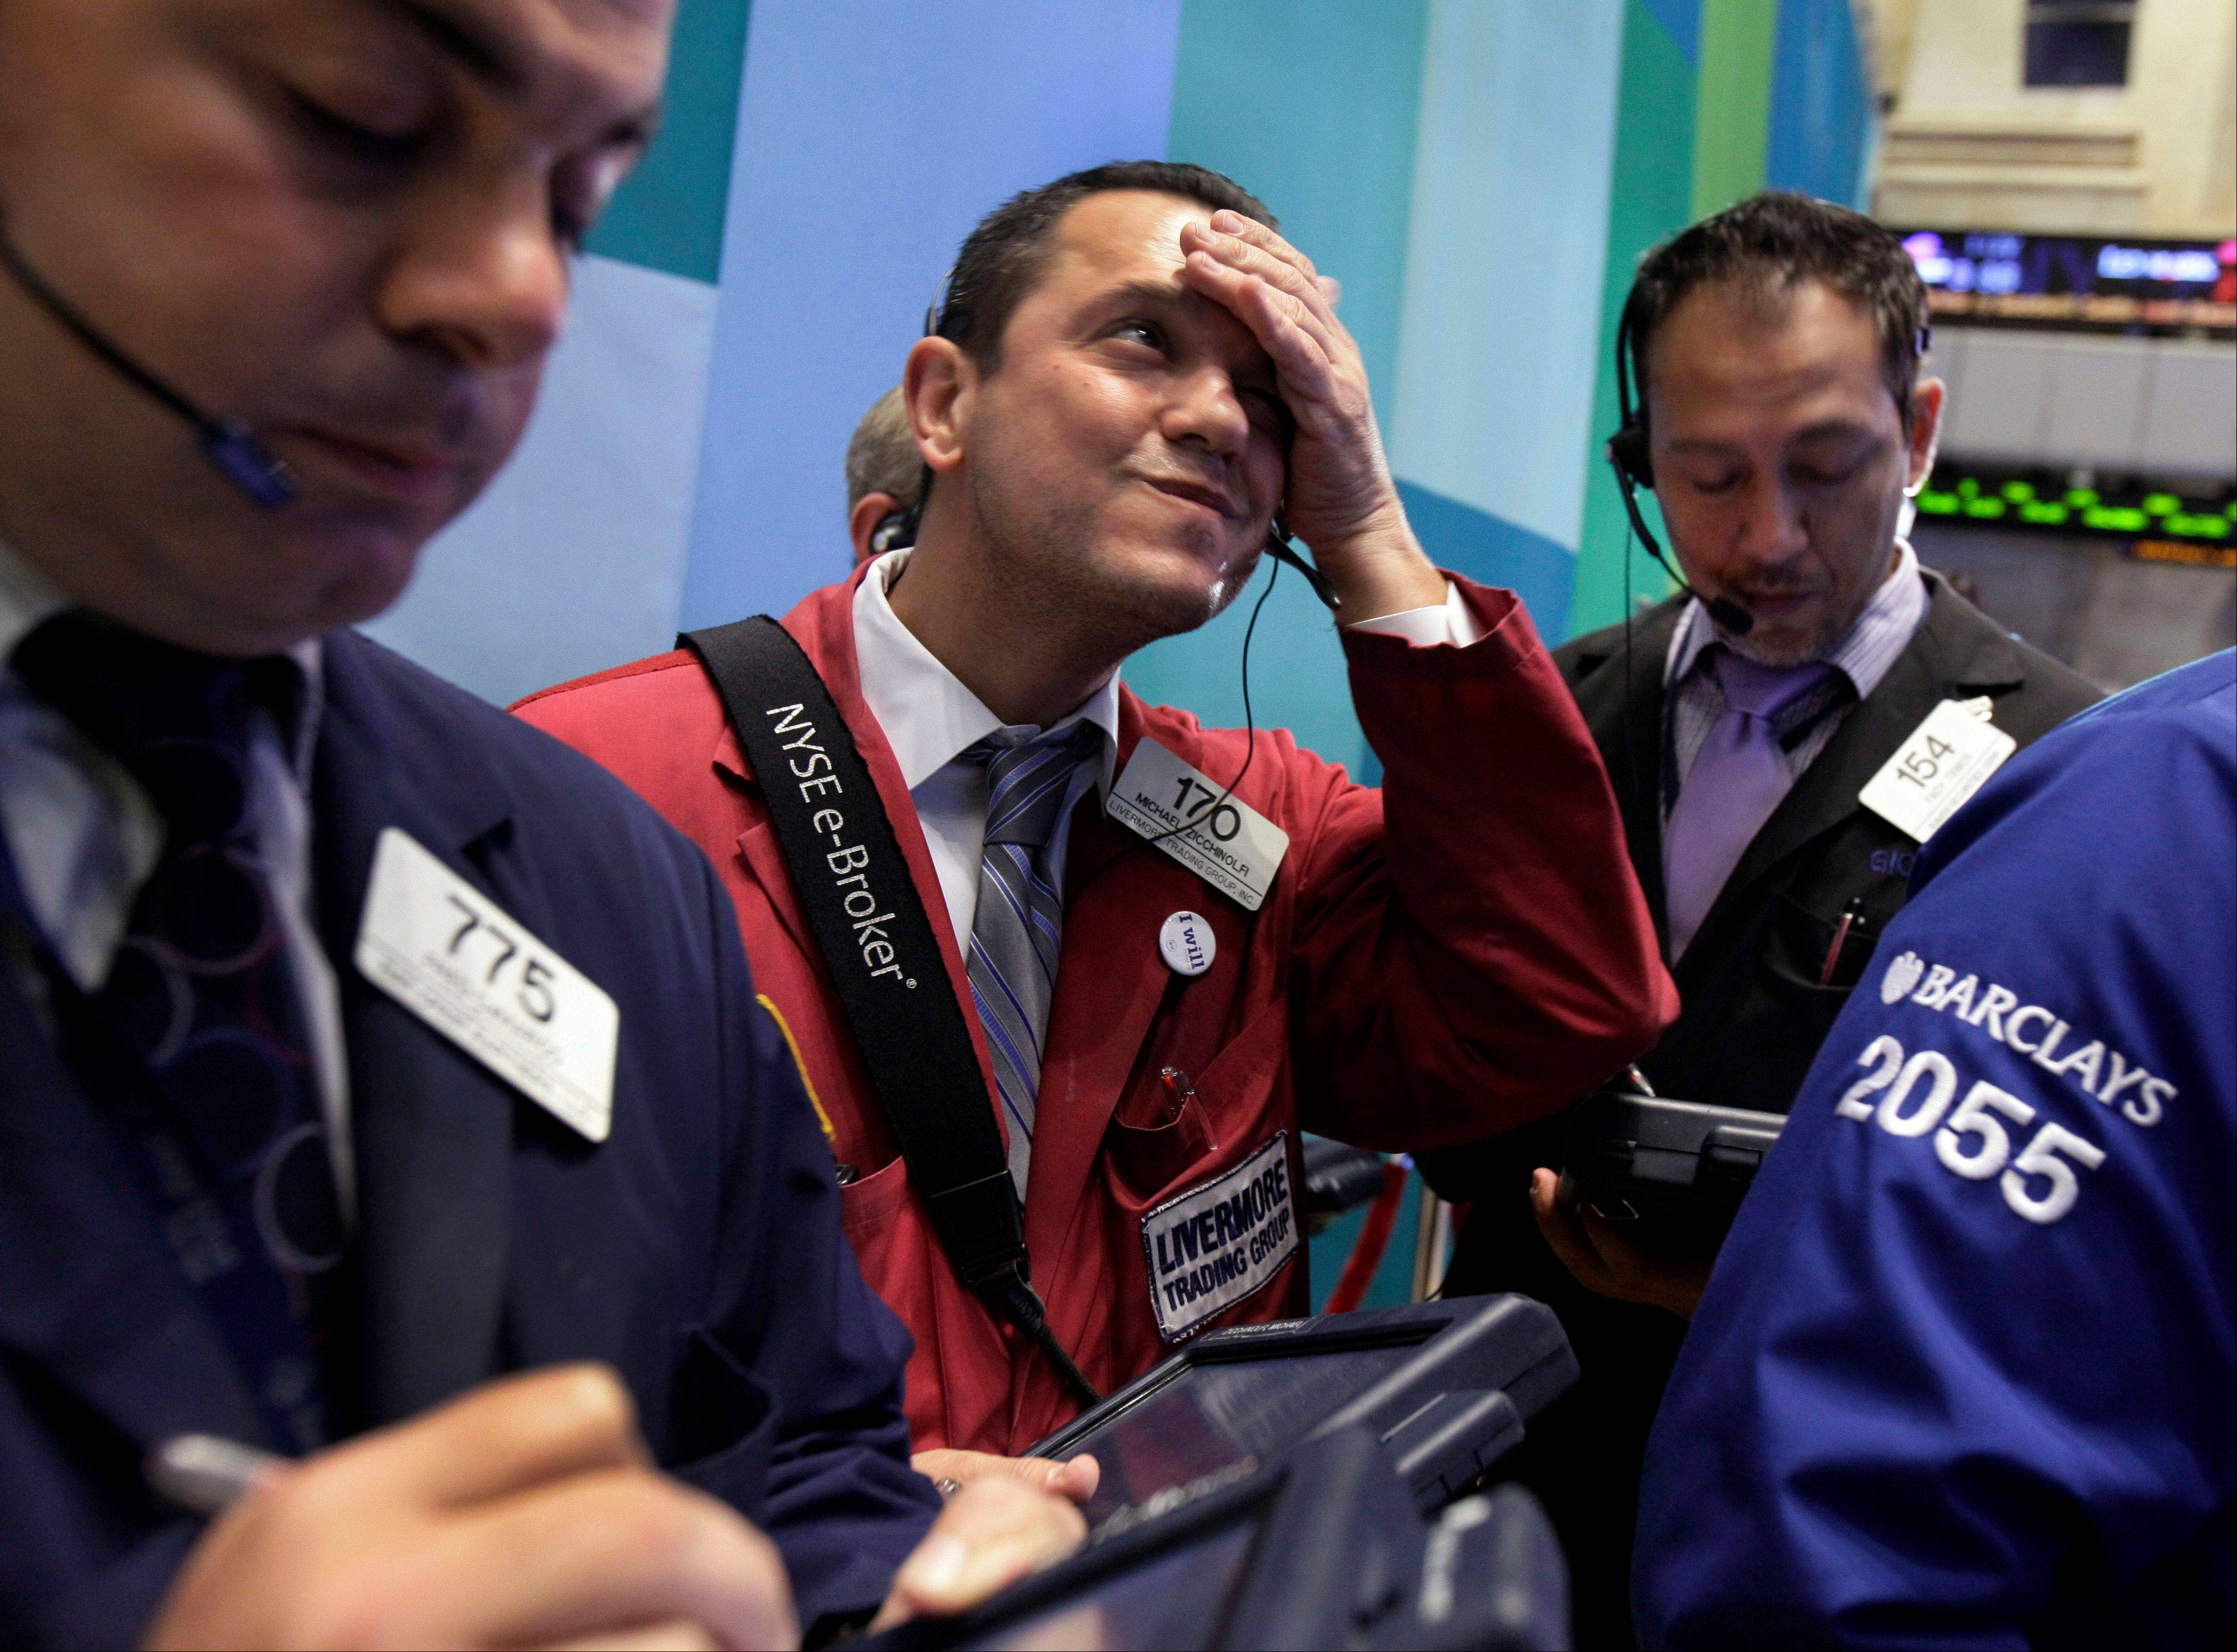 U.S. stocks erased earlier losses, sending the benchmark Standard & Poor�s 500 Index higher for the first time in three days, as an advance in Apple Inc. shares overshadowed disappointing corporate results.